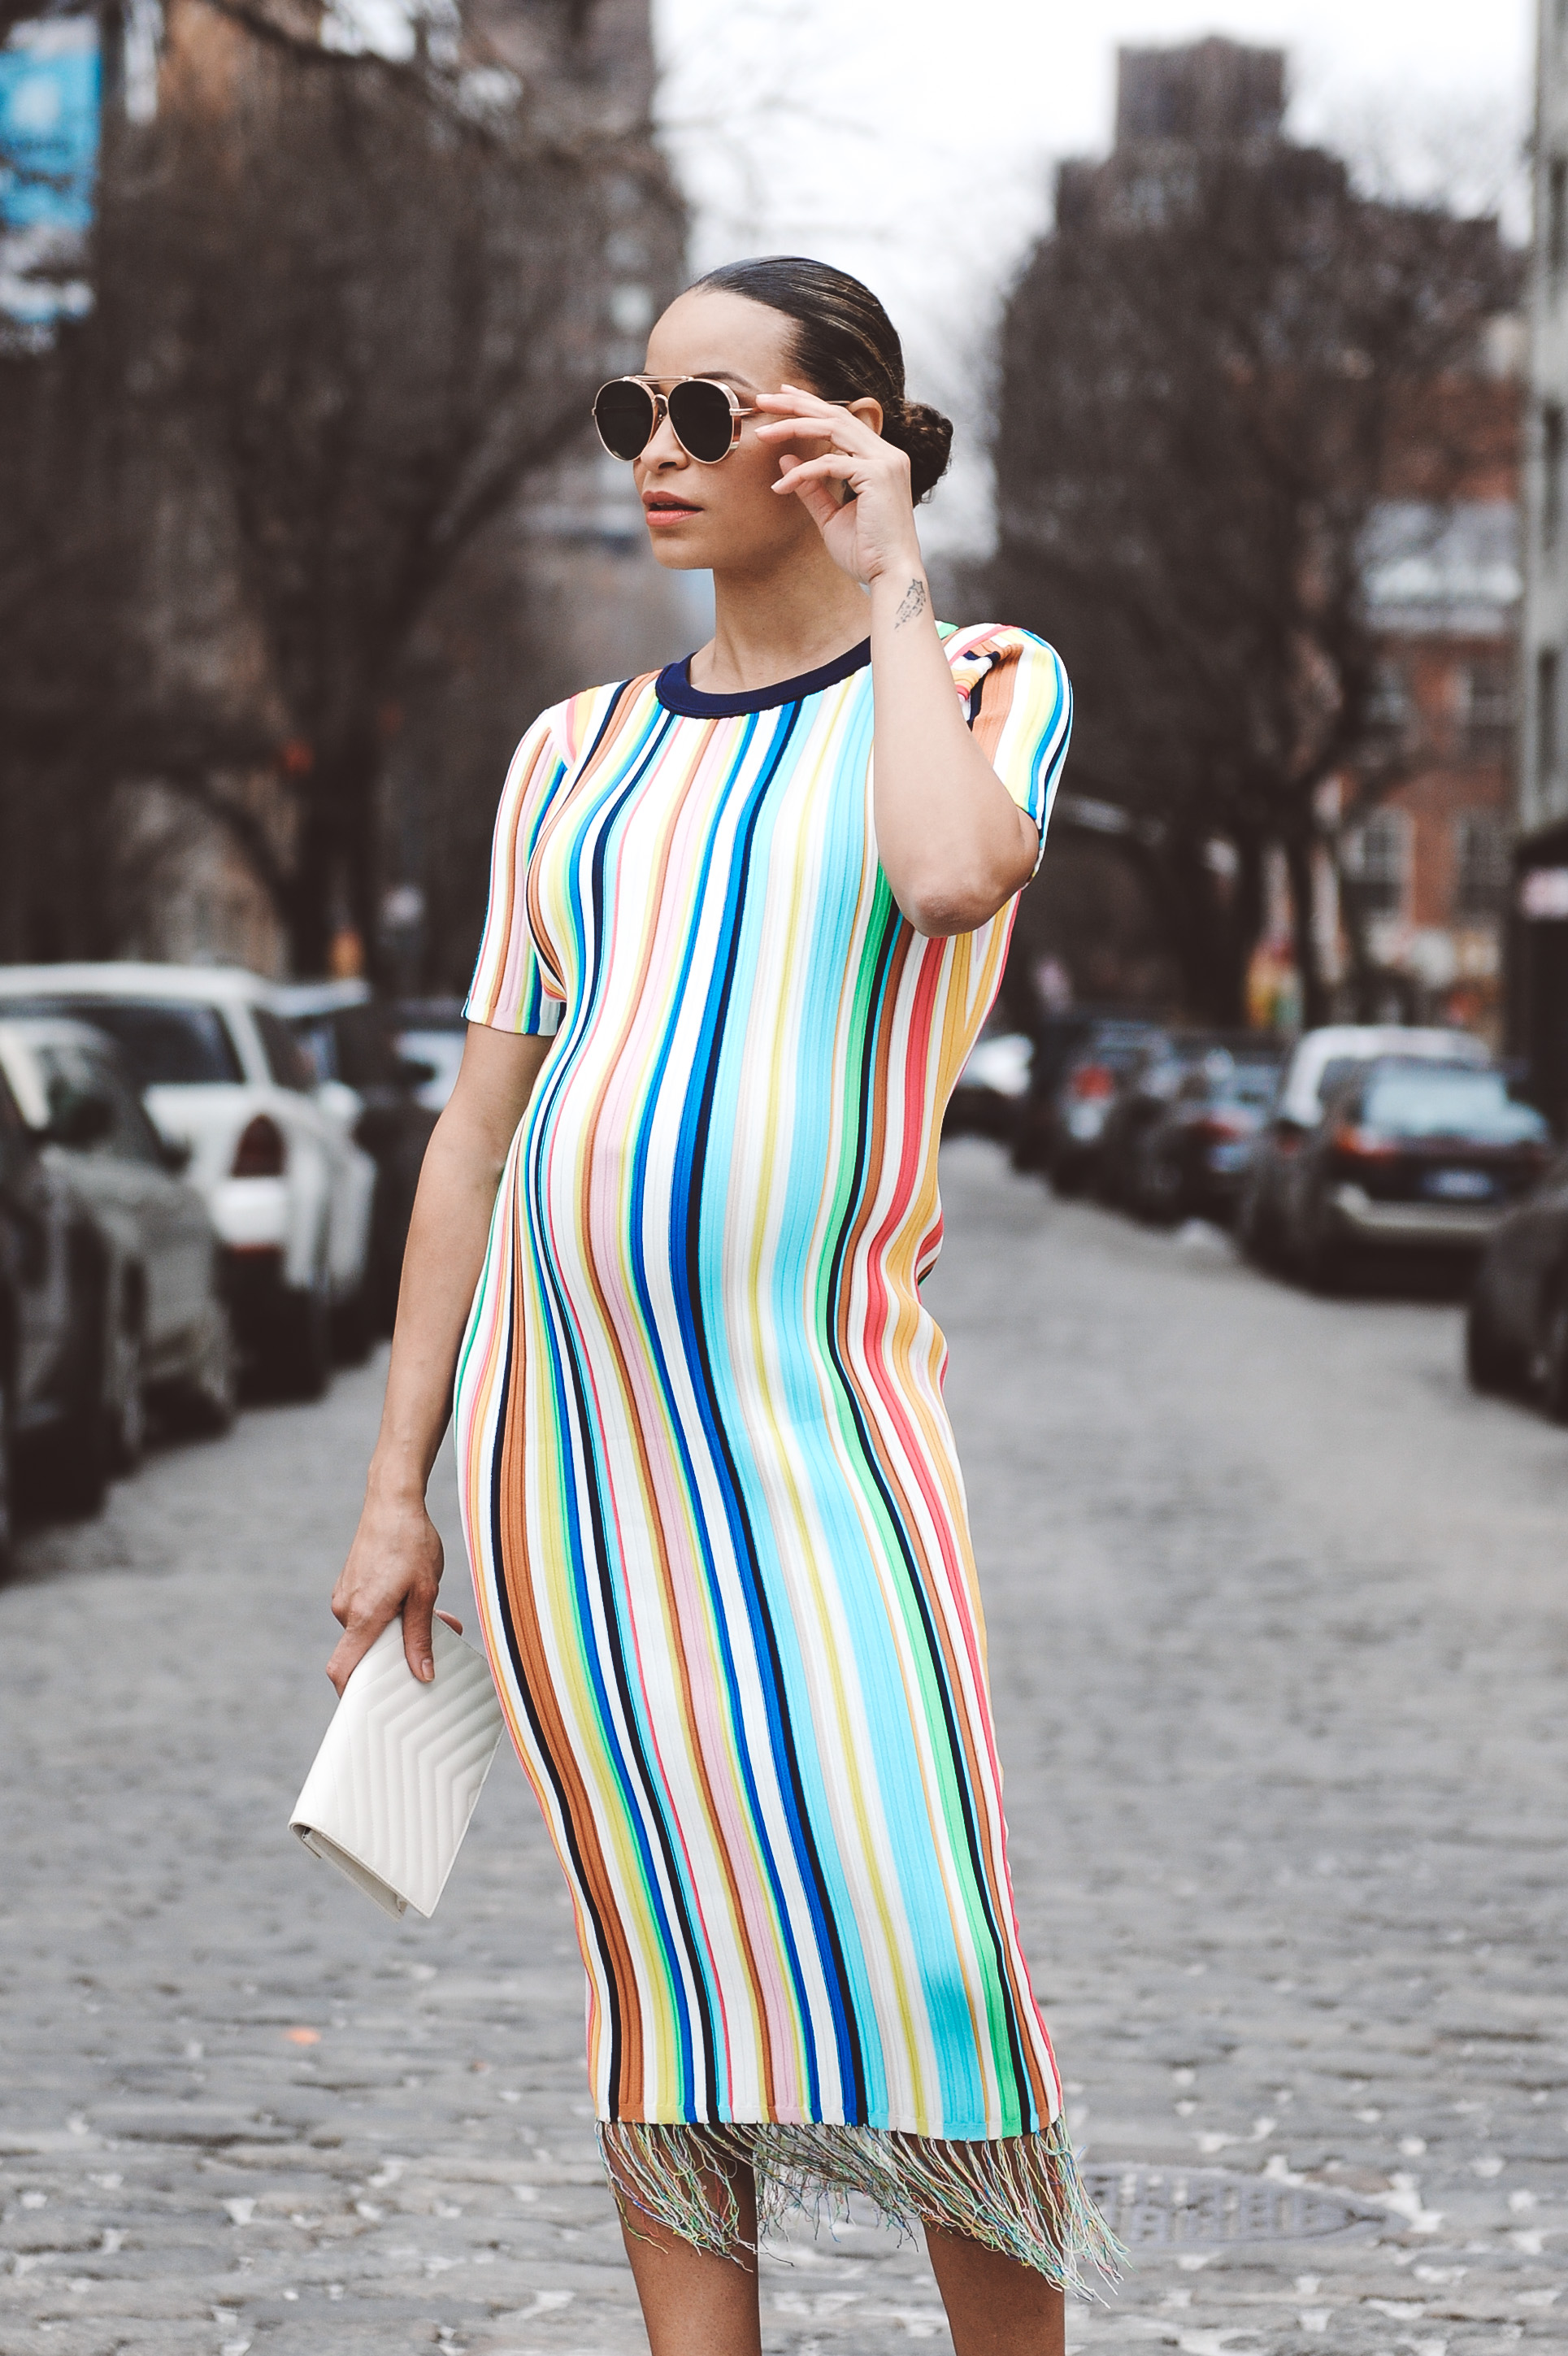 bd0ad3141c2 Lifestyle Blogger Sai De Silva Shows Pregnancy at 9 months 36 weeks in a  stripe Milly Dress10